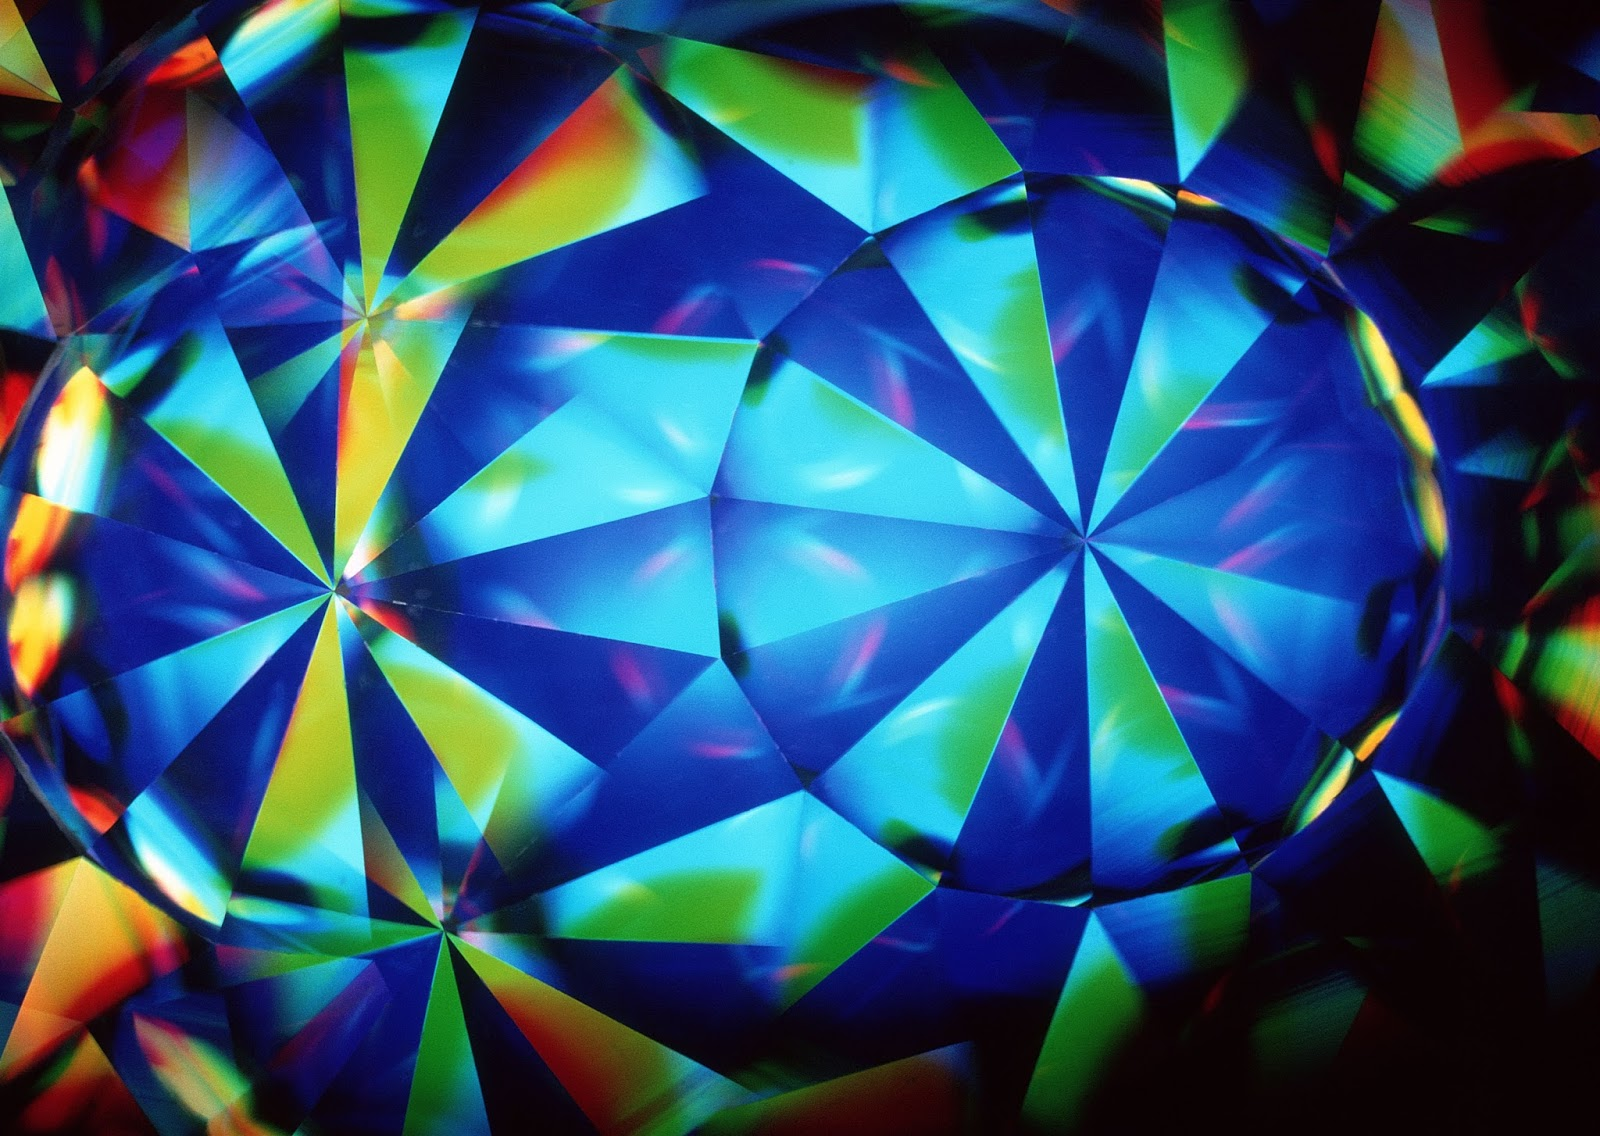 free hd images  fifcu purchased   kaleidoscope hd images